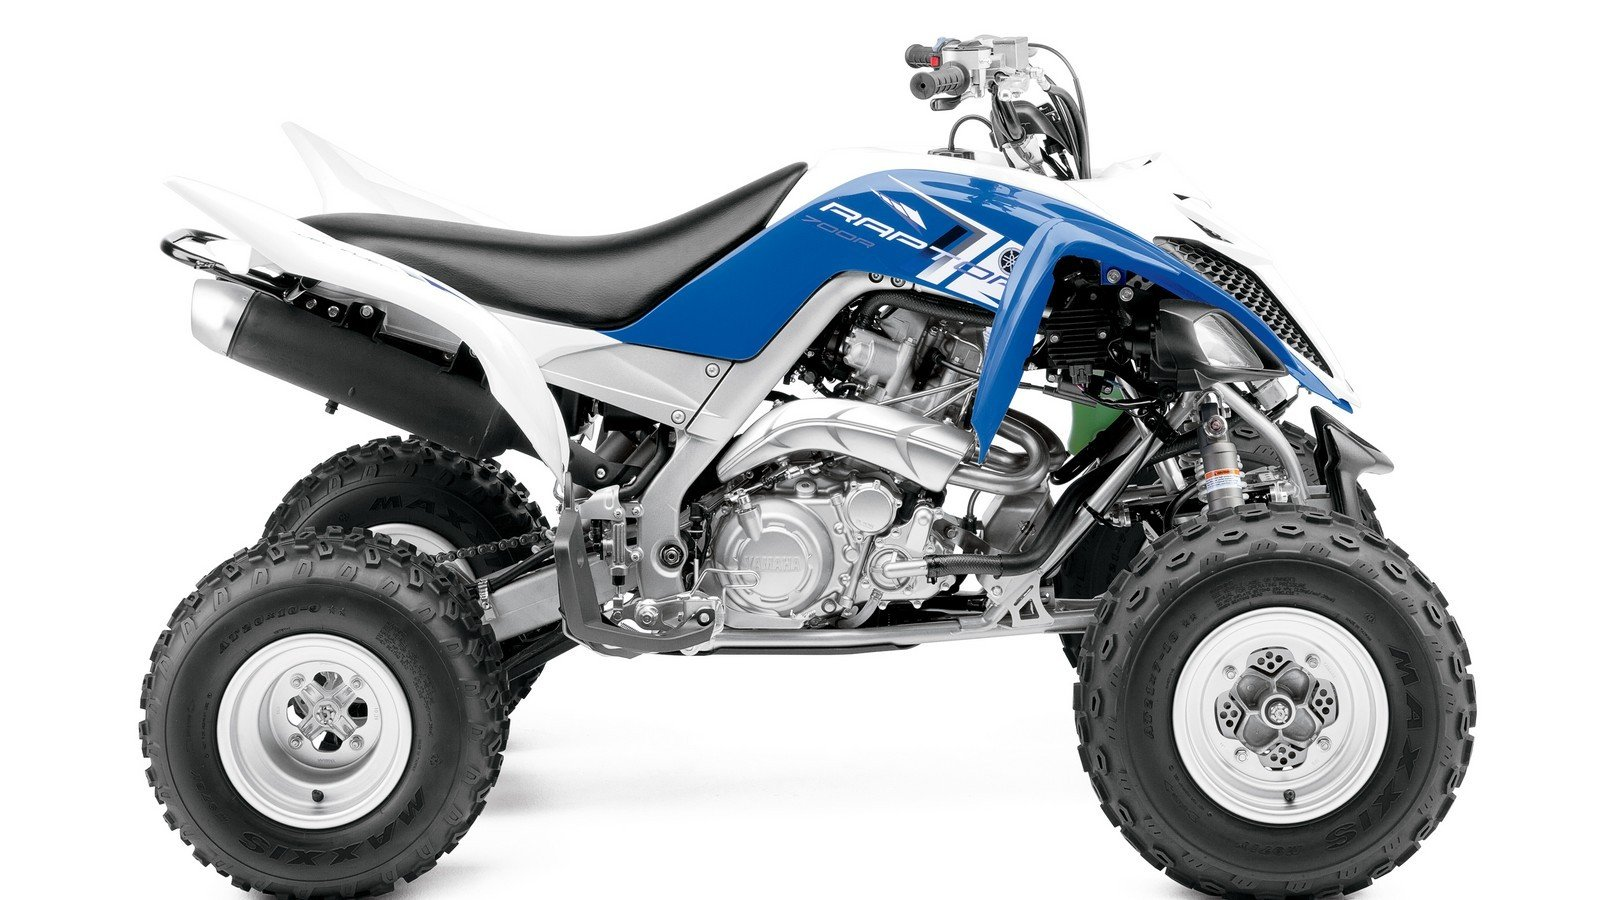 2013 yamaha raptor 700r picture 465132 motorcycle